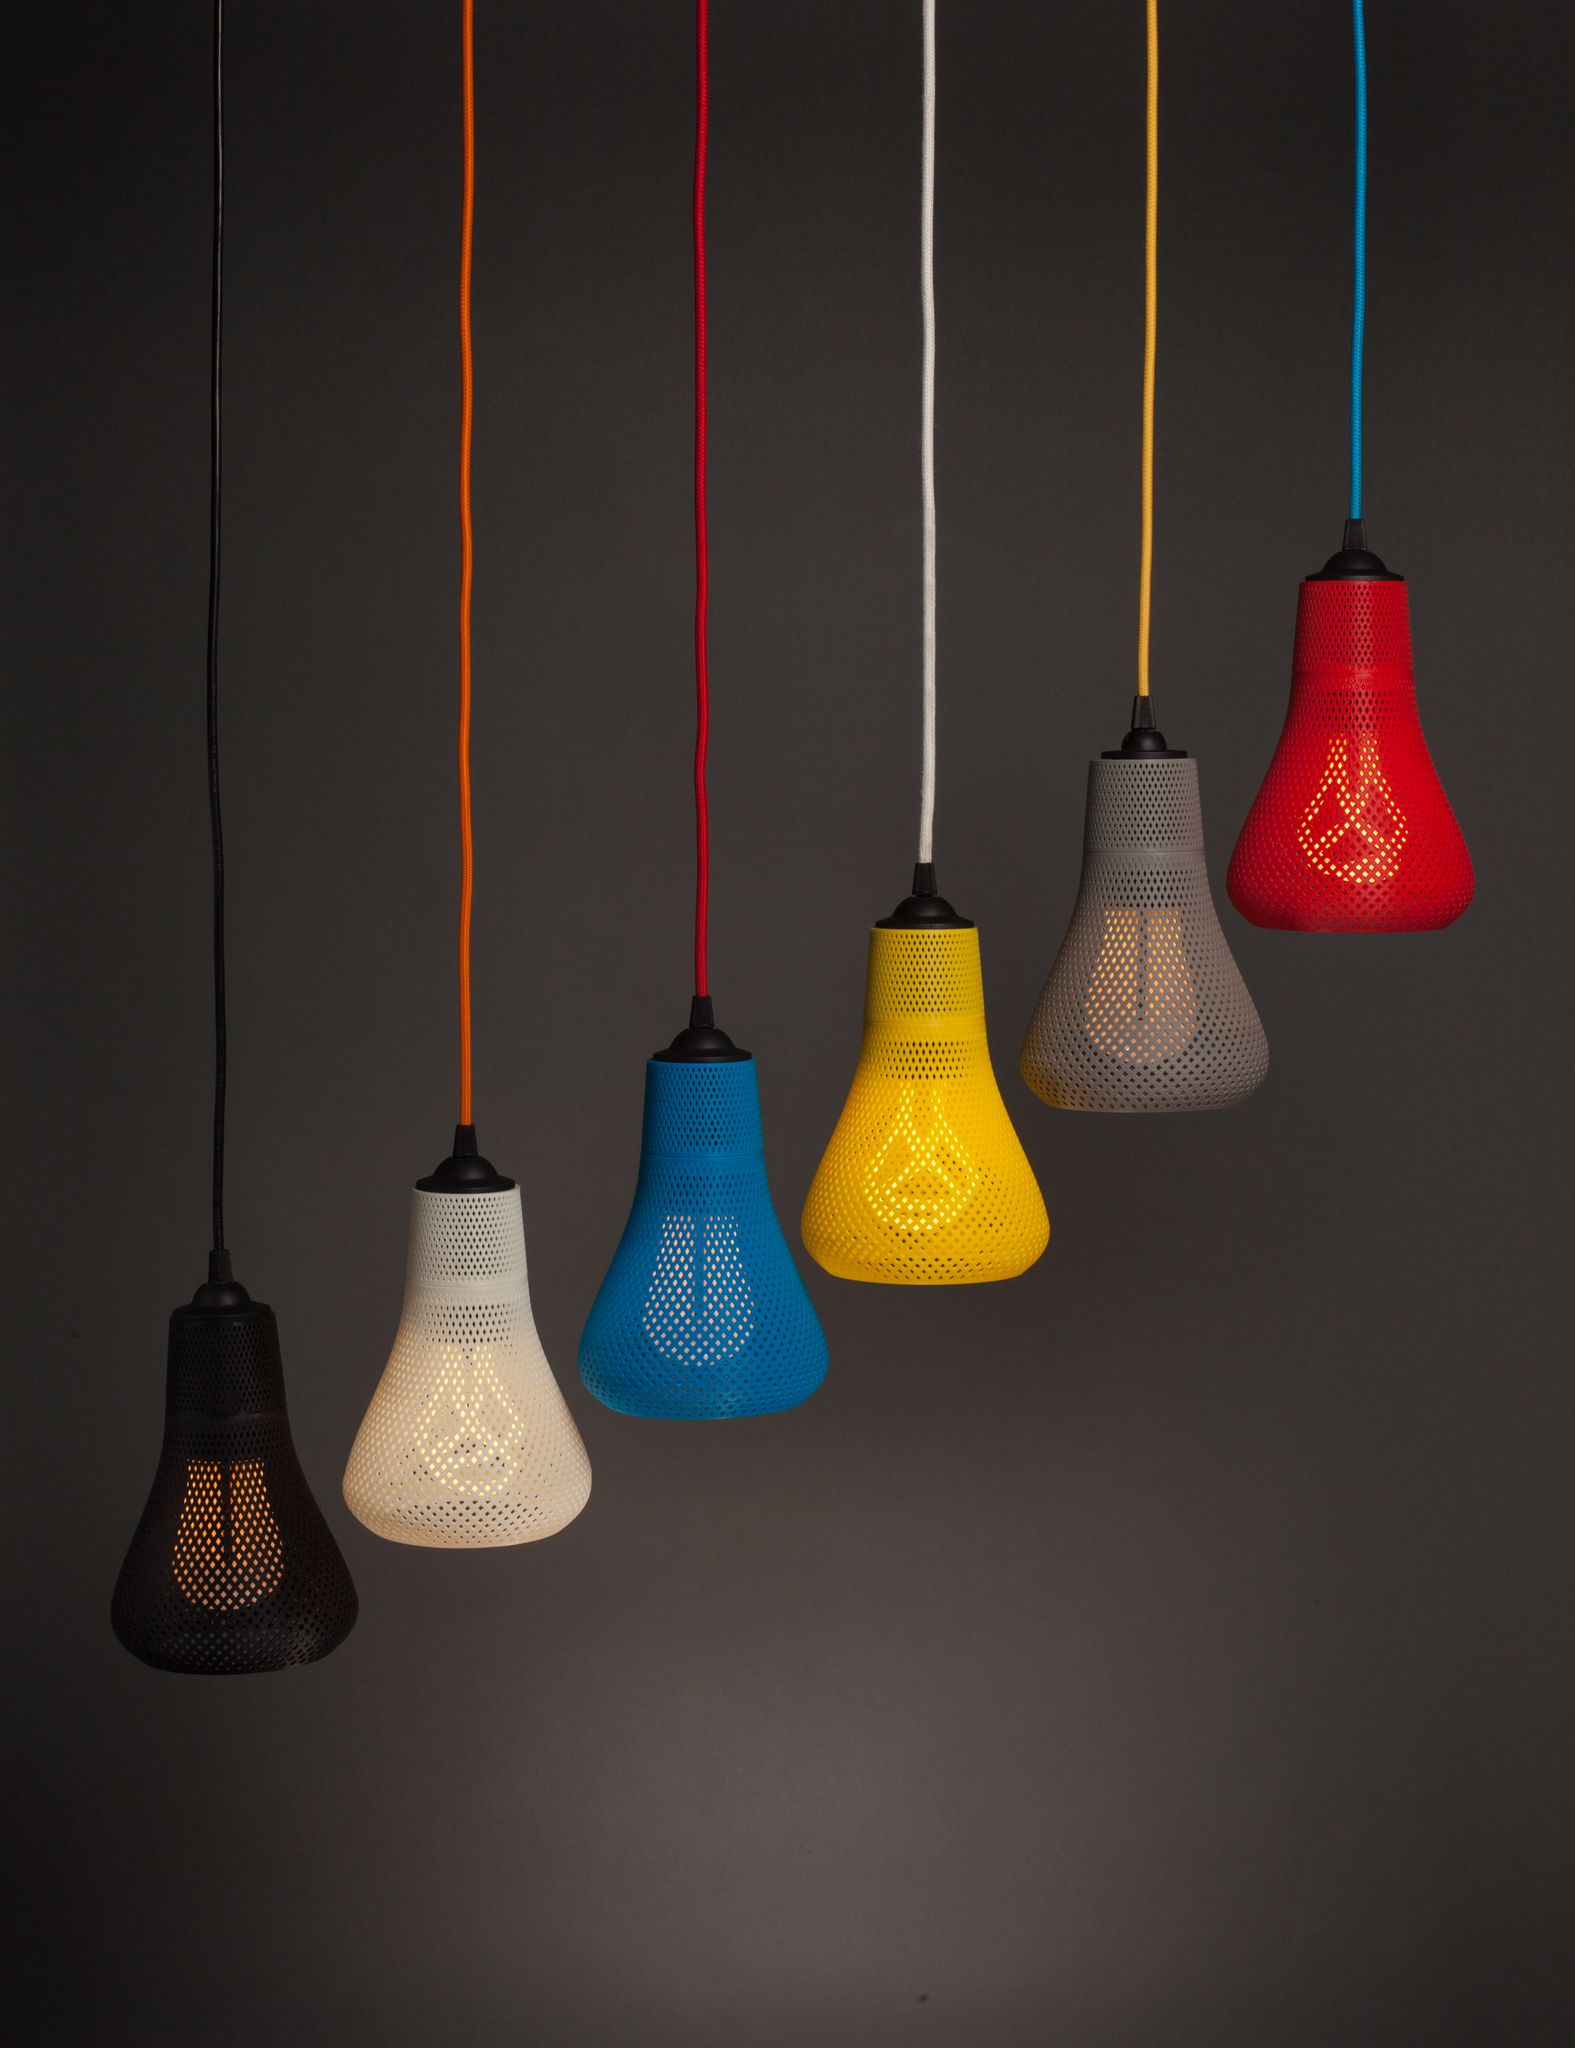 The Kayan 3d Printed Lamp Shade By Plumen X Formaliz3d Plumen Plumen Bulb Lamp Design